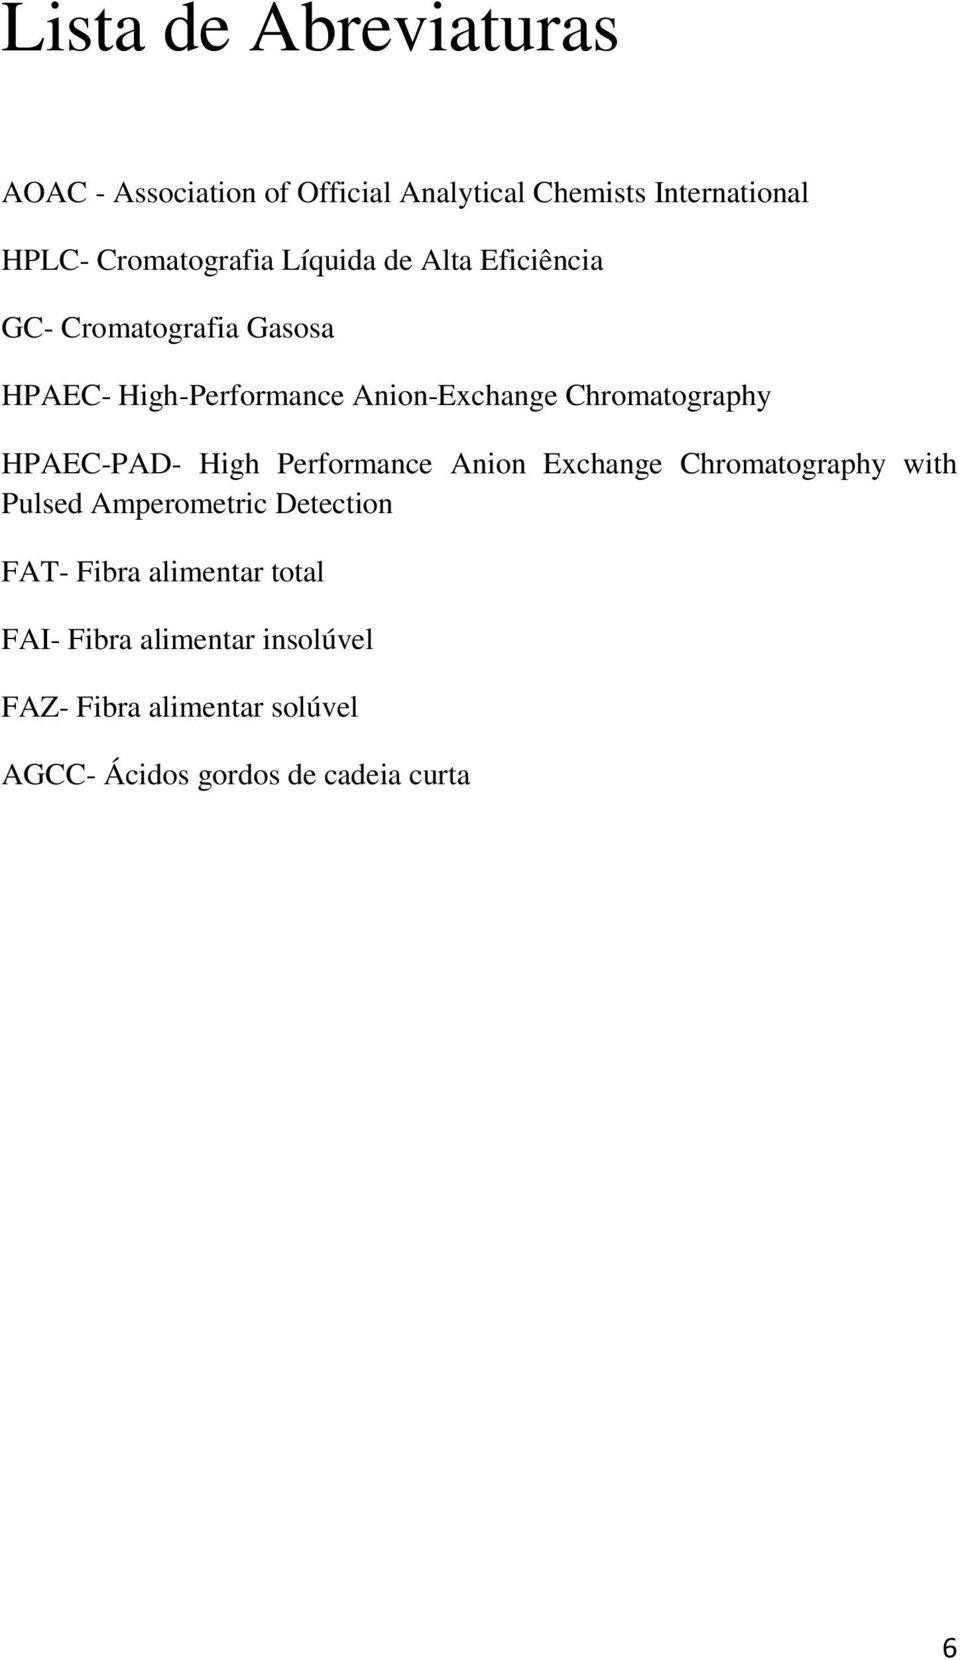 HPAEC-PAD- High Performance Anion Exchange Chromatography with Pulsed Amperometric Detection FAT- Fibra